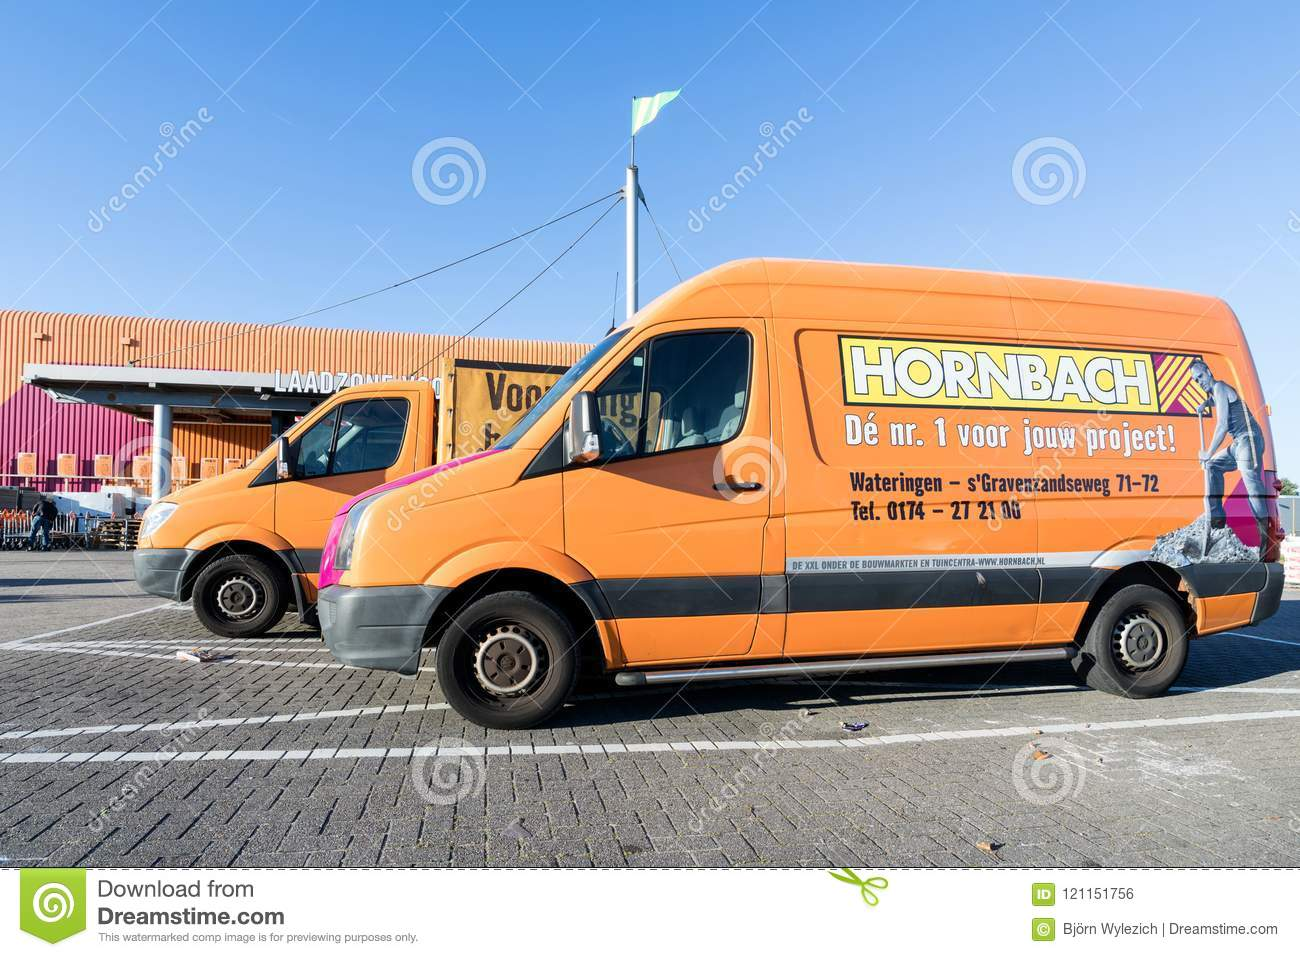 Hornbach vans at store editorial photo image of delivery 121151756 hornbach is a german diy store chain offering home improvement and do it yourself goods solutioingenieria Gallery